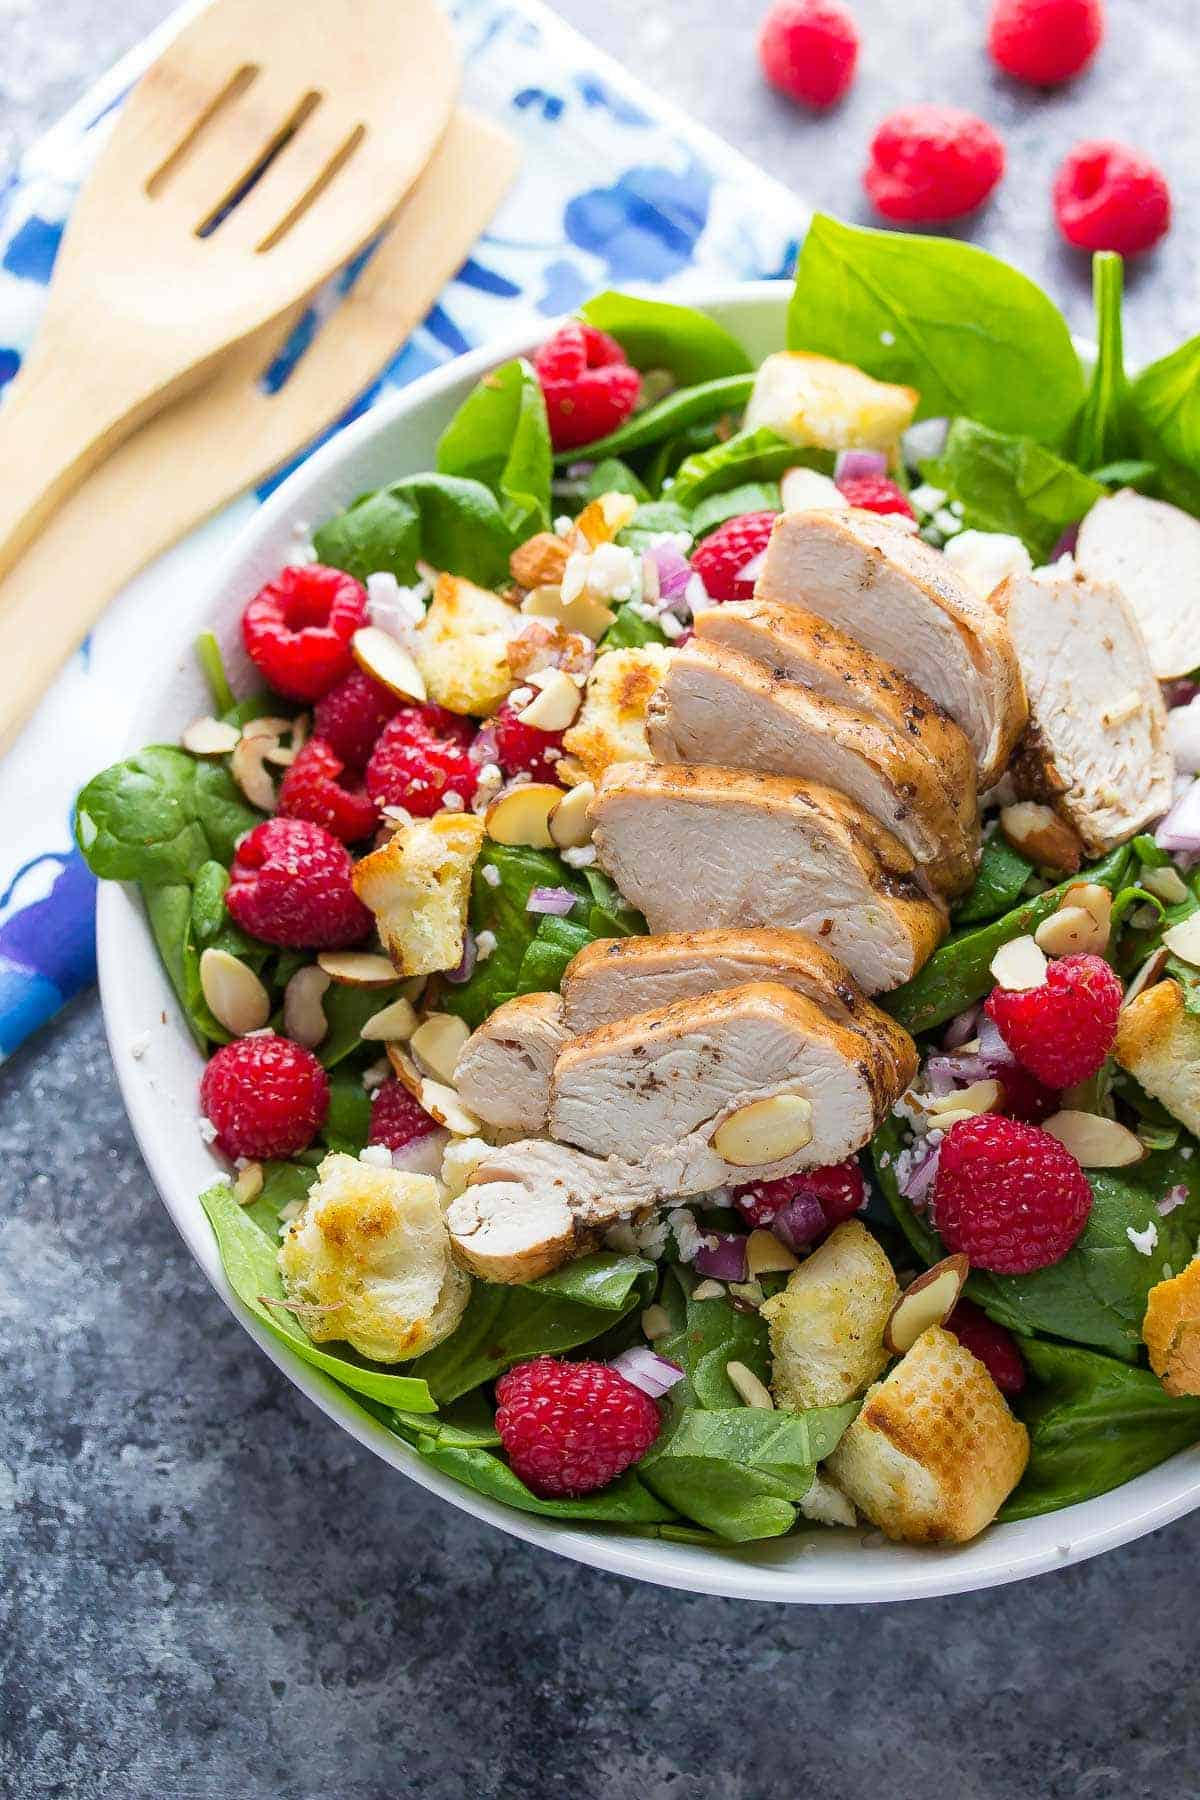 Raspberry Spinach Panzanella Recipe with Chicken and Raspberry Basil Vinaigrette, ready in 30 minutes!